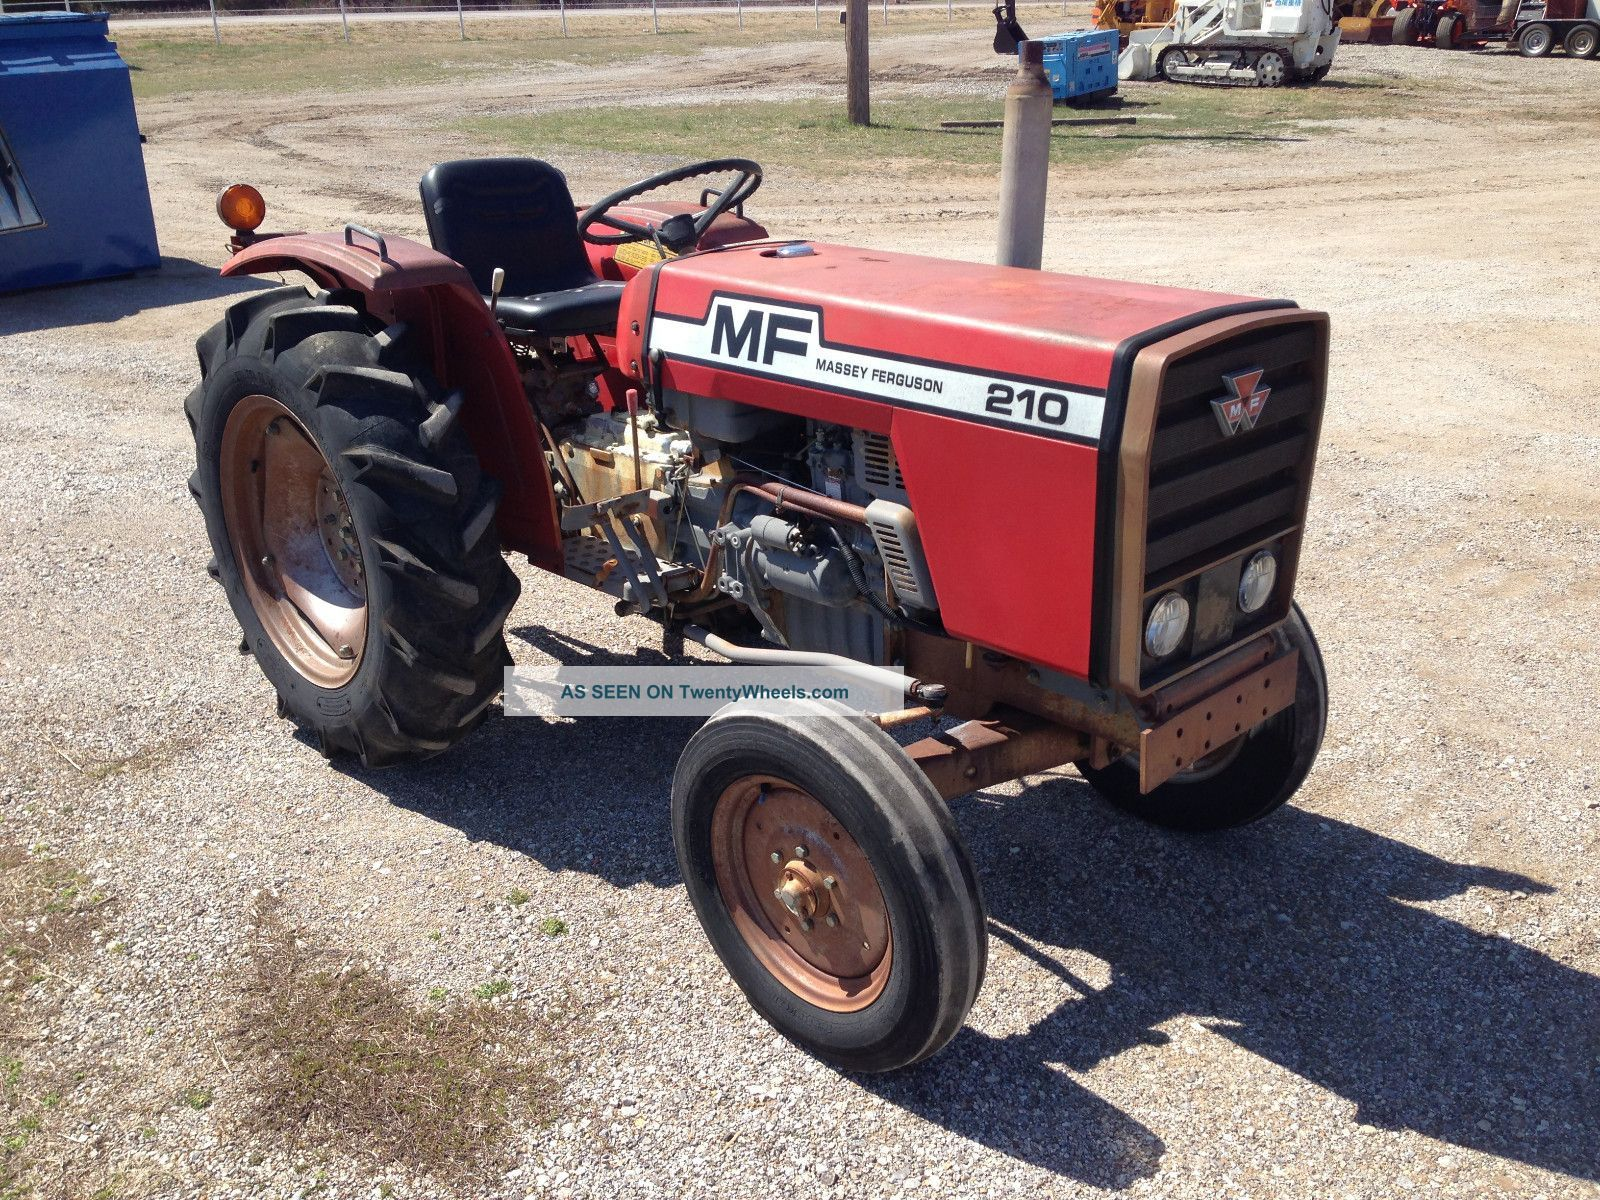 massey ferguson 210 - Google Search